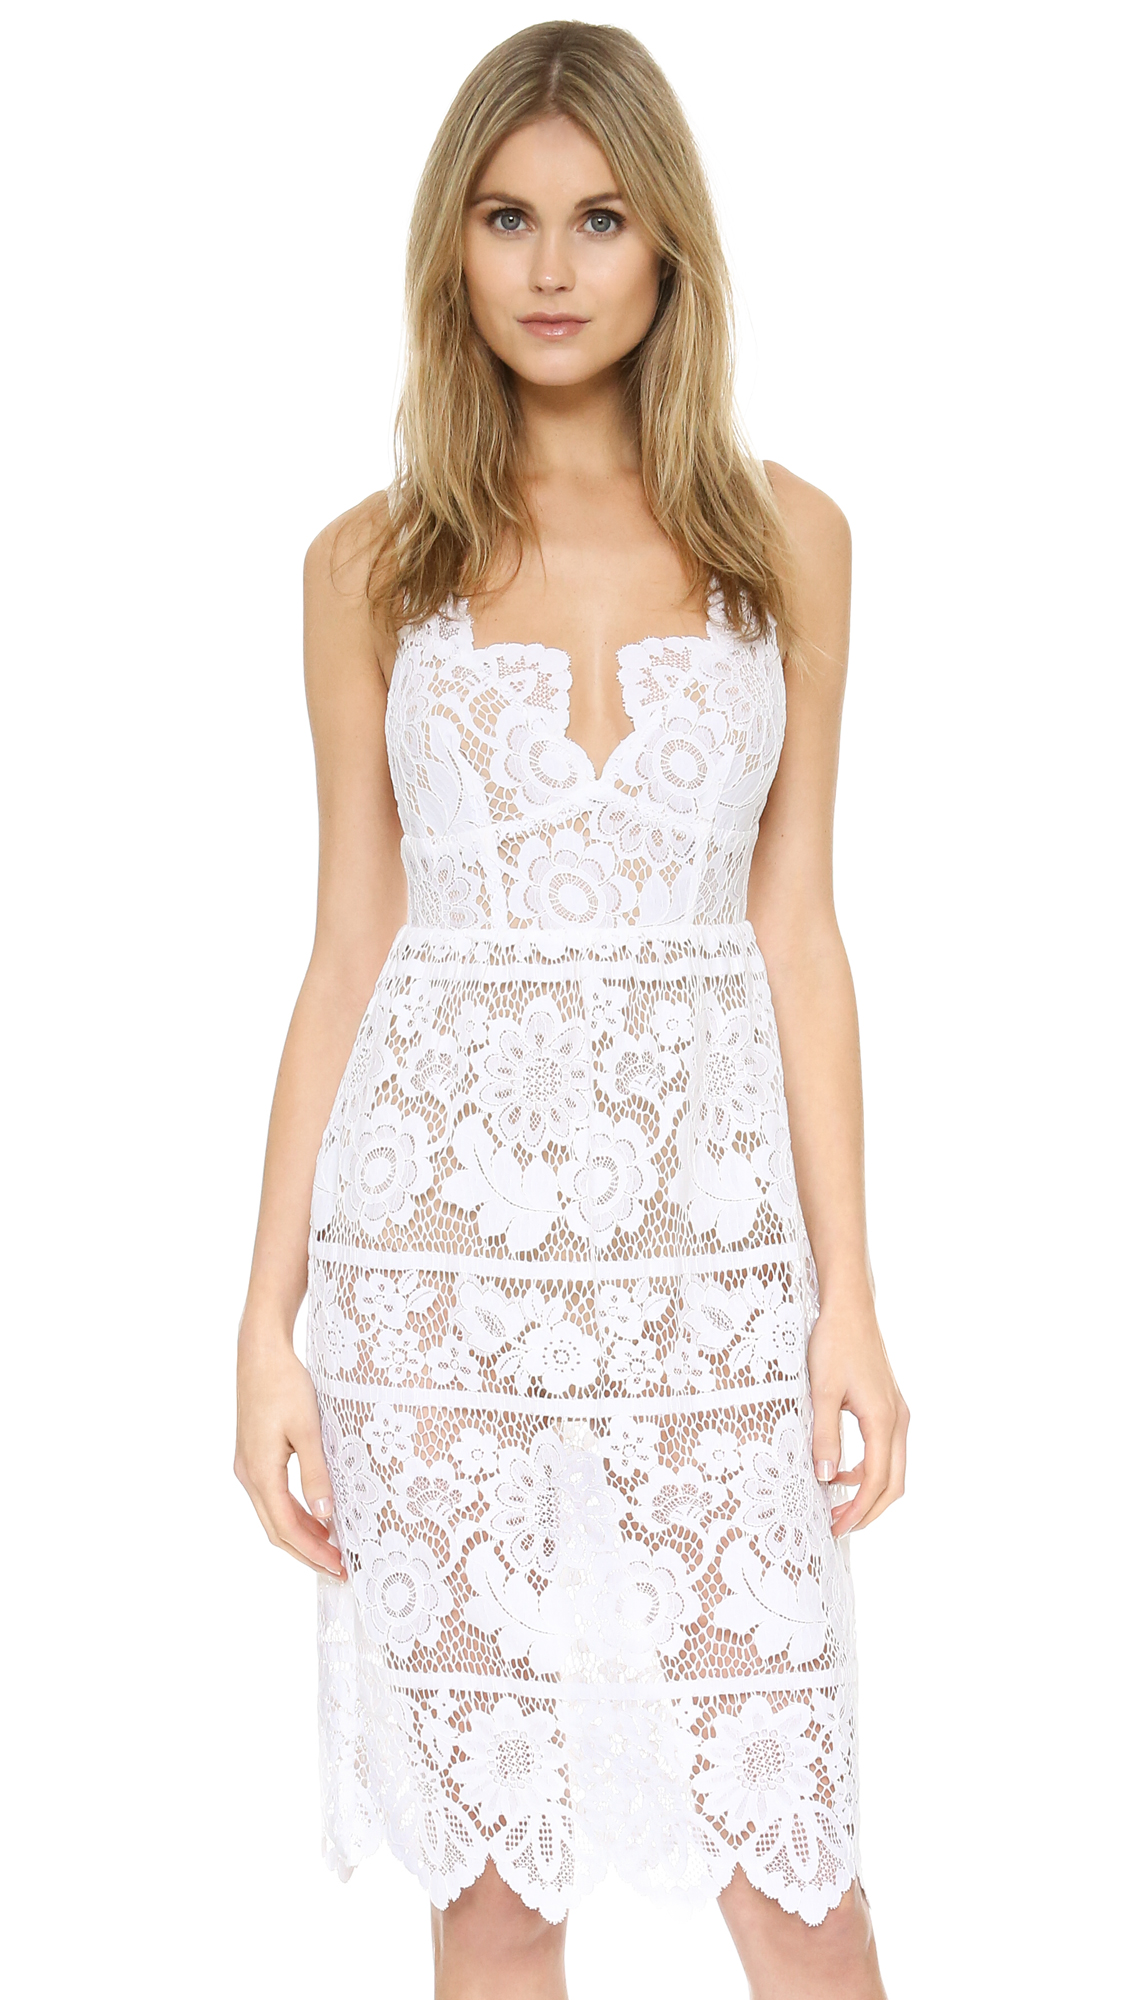 A lingerie inspired For Love & Lemons dress, styled with peek a boo nude bodysuit lining. Adjustable elastic shoulder straps. Semi sheer. Fabric: Lace. Shell: 62.5% cotton/37.5% nylon. Lining: 82% nylon/18% spandex. Dry clean. Imported, China. Measurements Length: 39.25in / 100